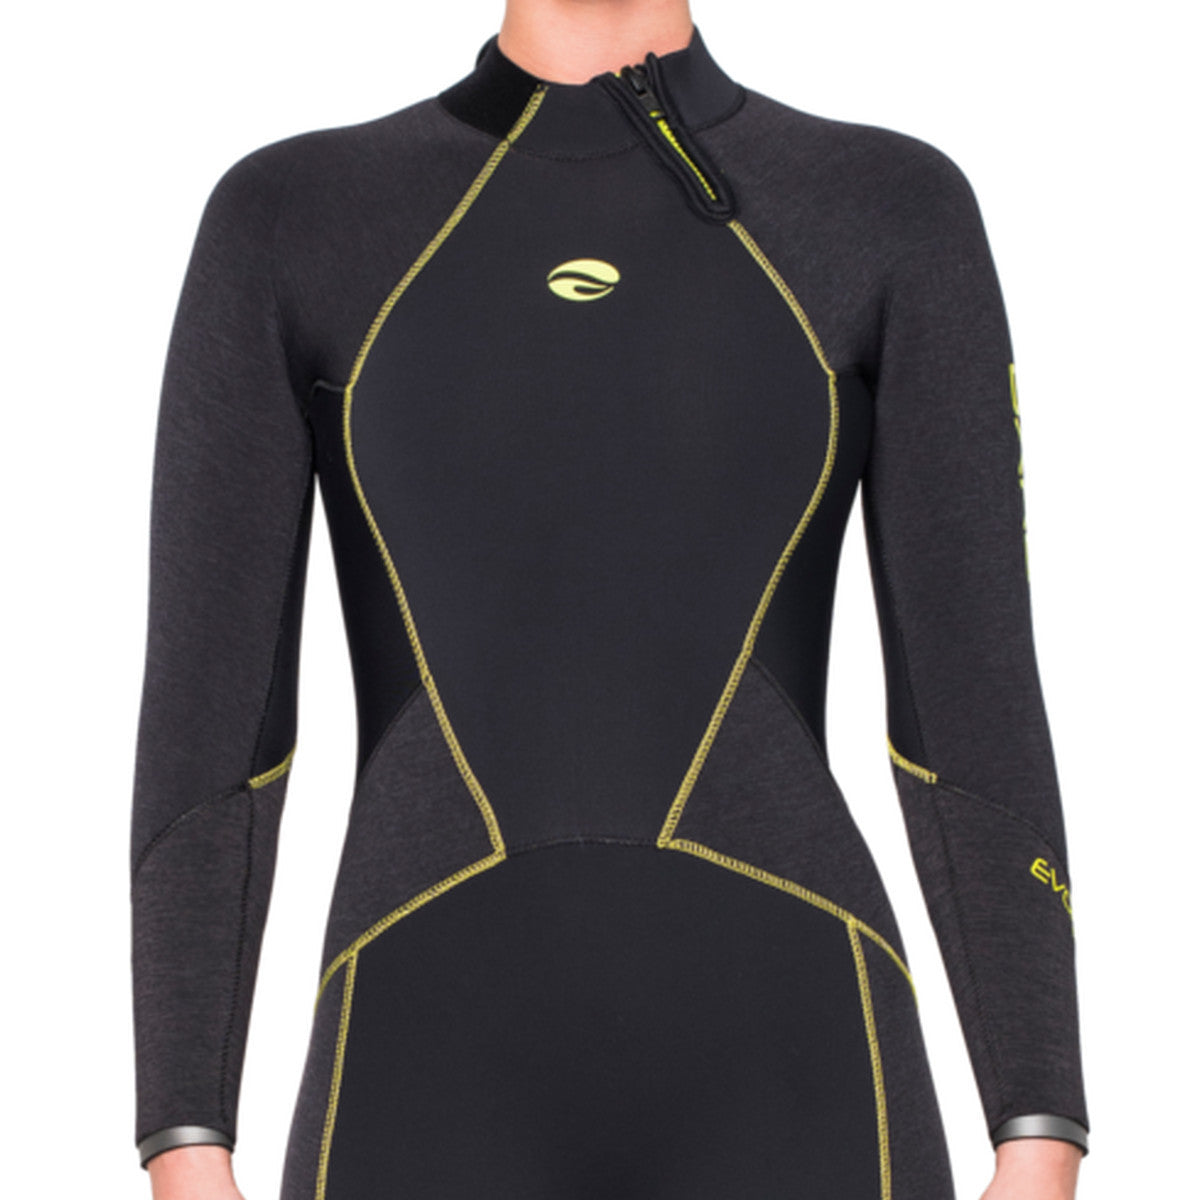 Bare Evoke 5mm Wetsuit: Womens - Oyster Diving Shop - 5